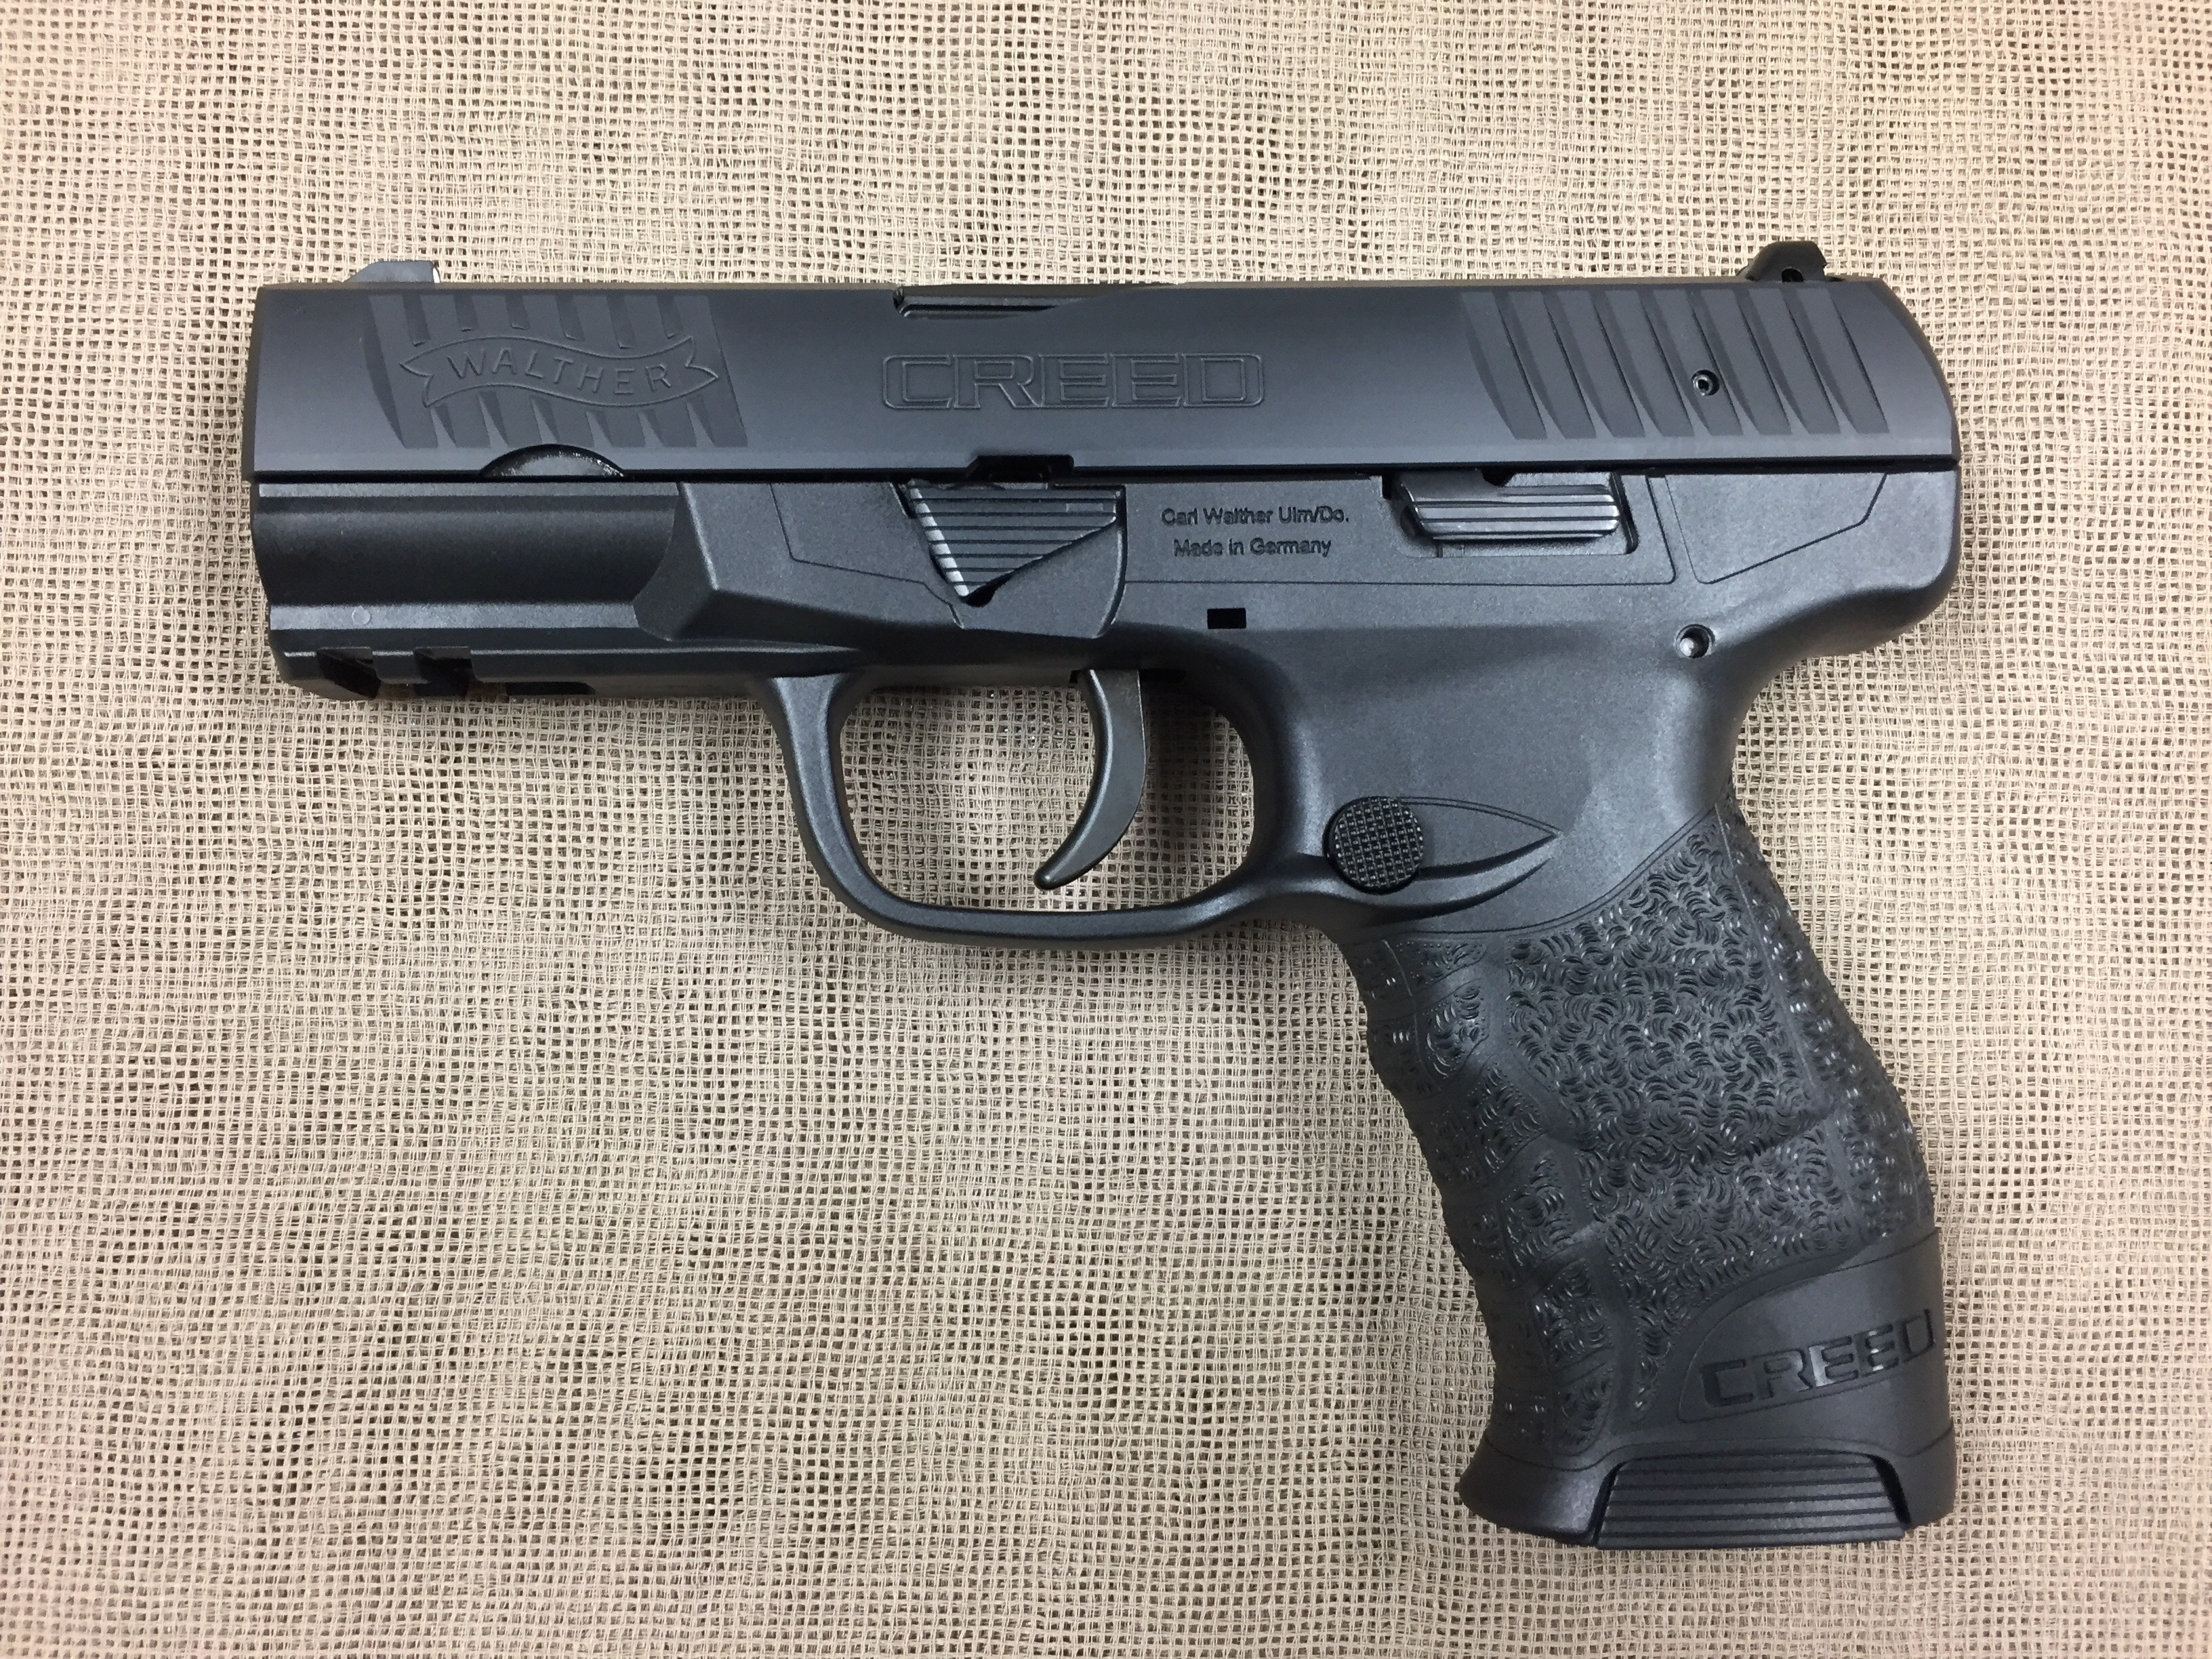 Walther CREED 9mm semi auto 16+1 capacity